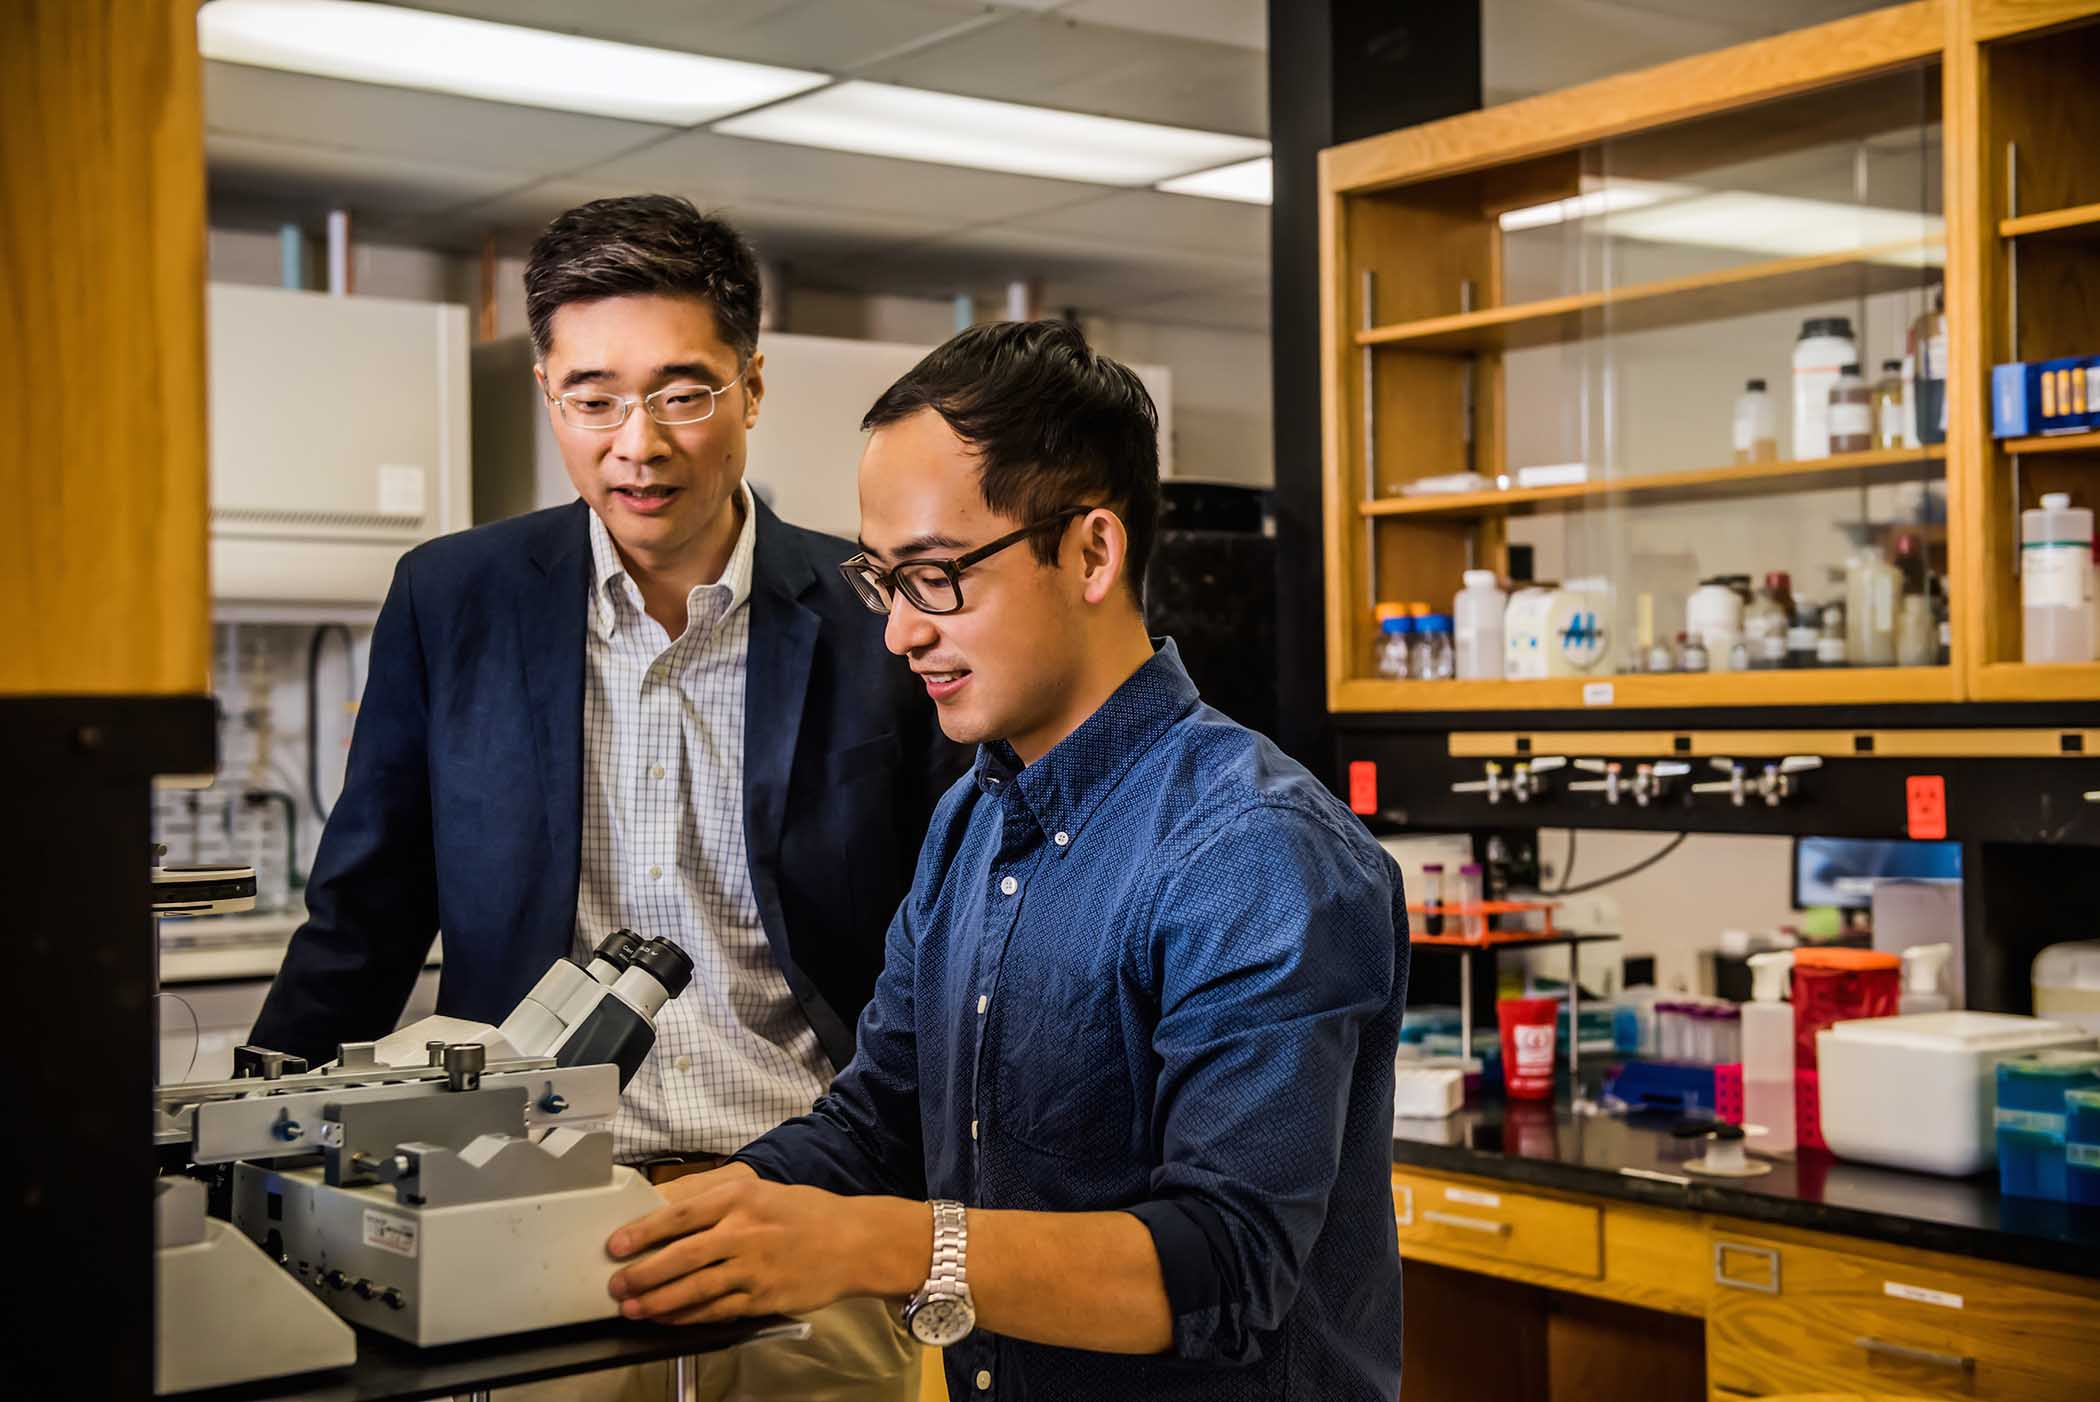 Leidong Mao, an associate professor in the College of Engineering recently launched FCS Technology, a startup based on a new method he and his colleagues developed for isolating tumor cells from blood samples.